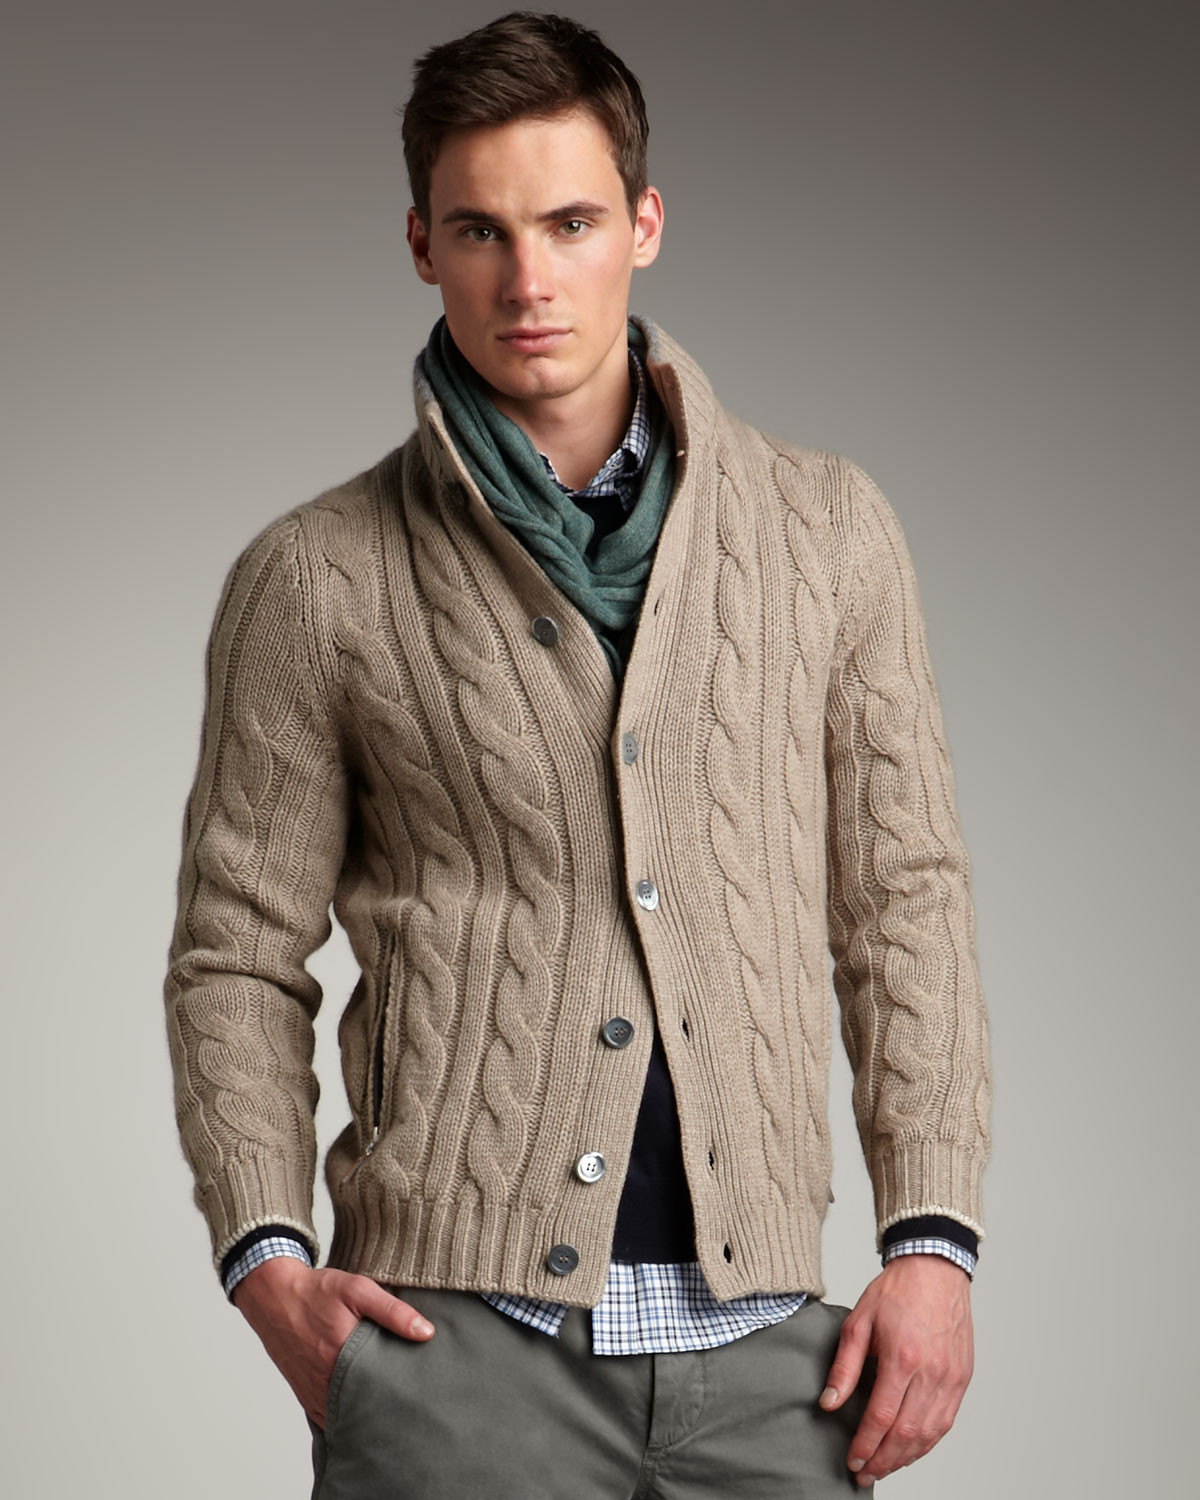 Lyst Brunello Cucinelli Cable knit Cardigan in Gray for Men